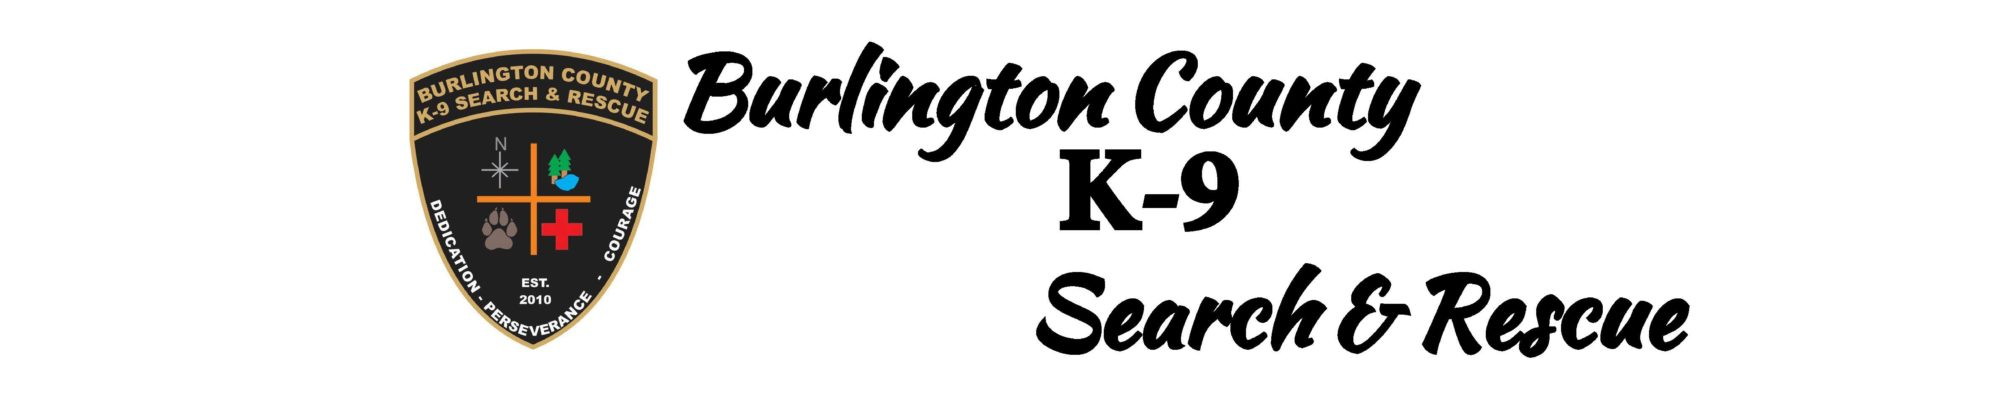 Burlington County K-9 Search & Rescue